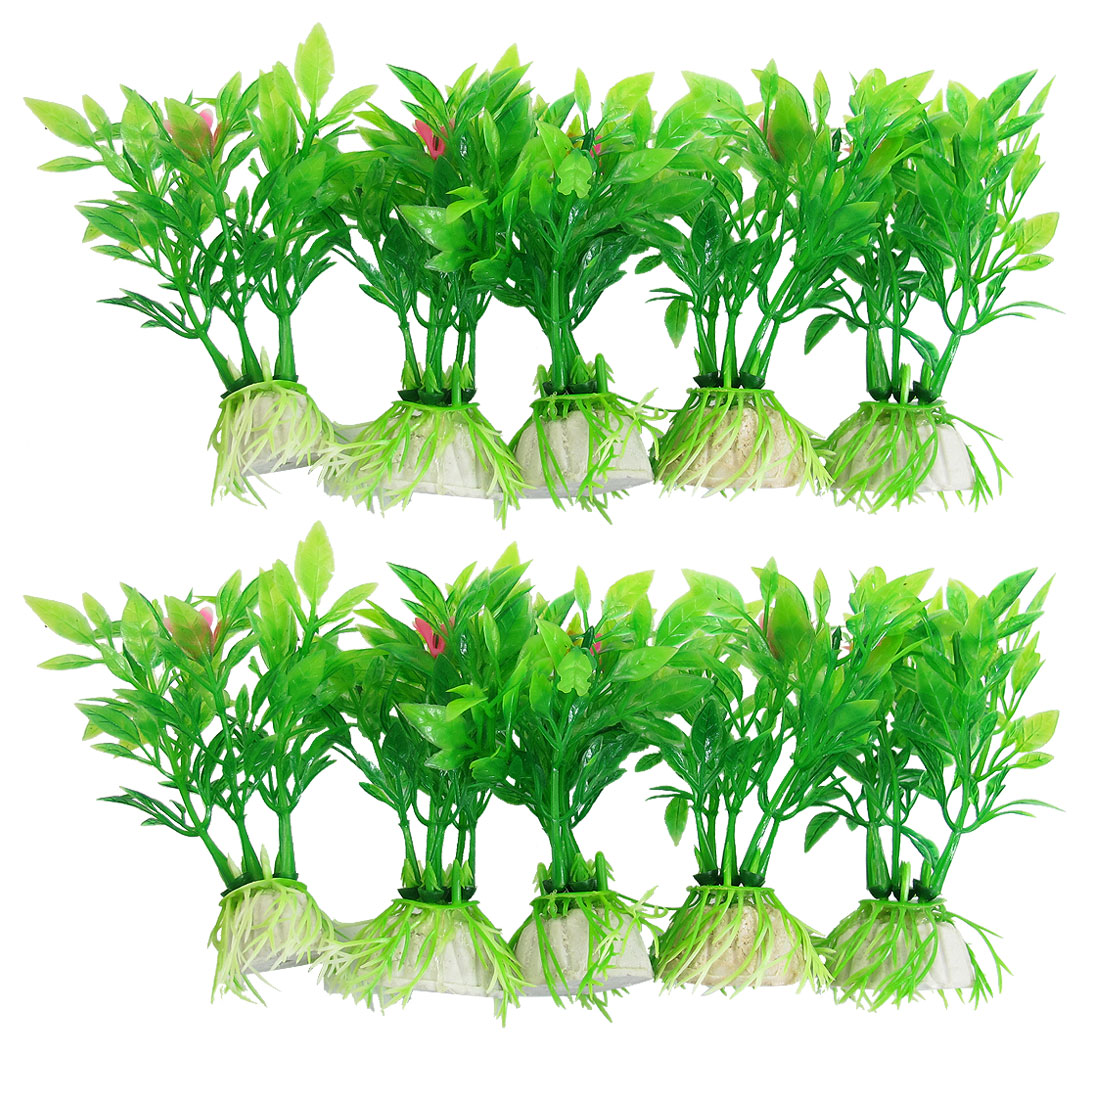 "10 Pcs Aquarium Decor Green Florescent Plastic Grass Plants 3.5"" w Base"